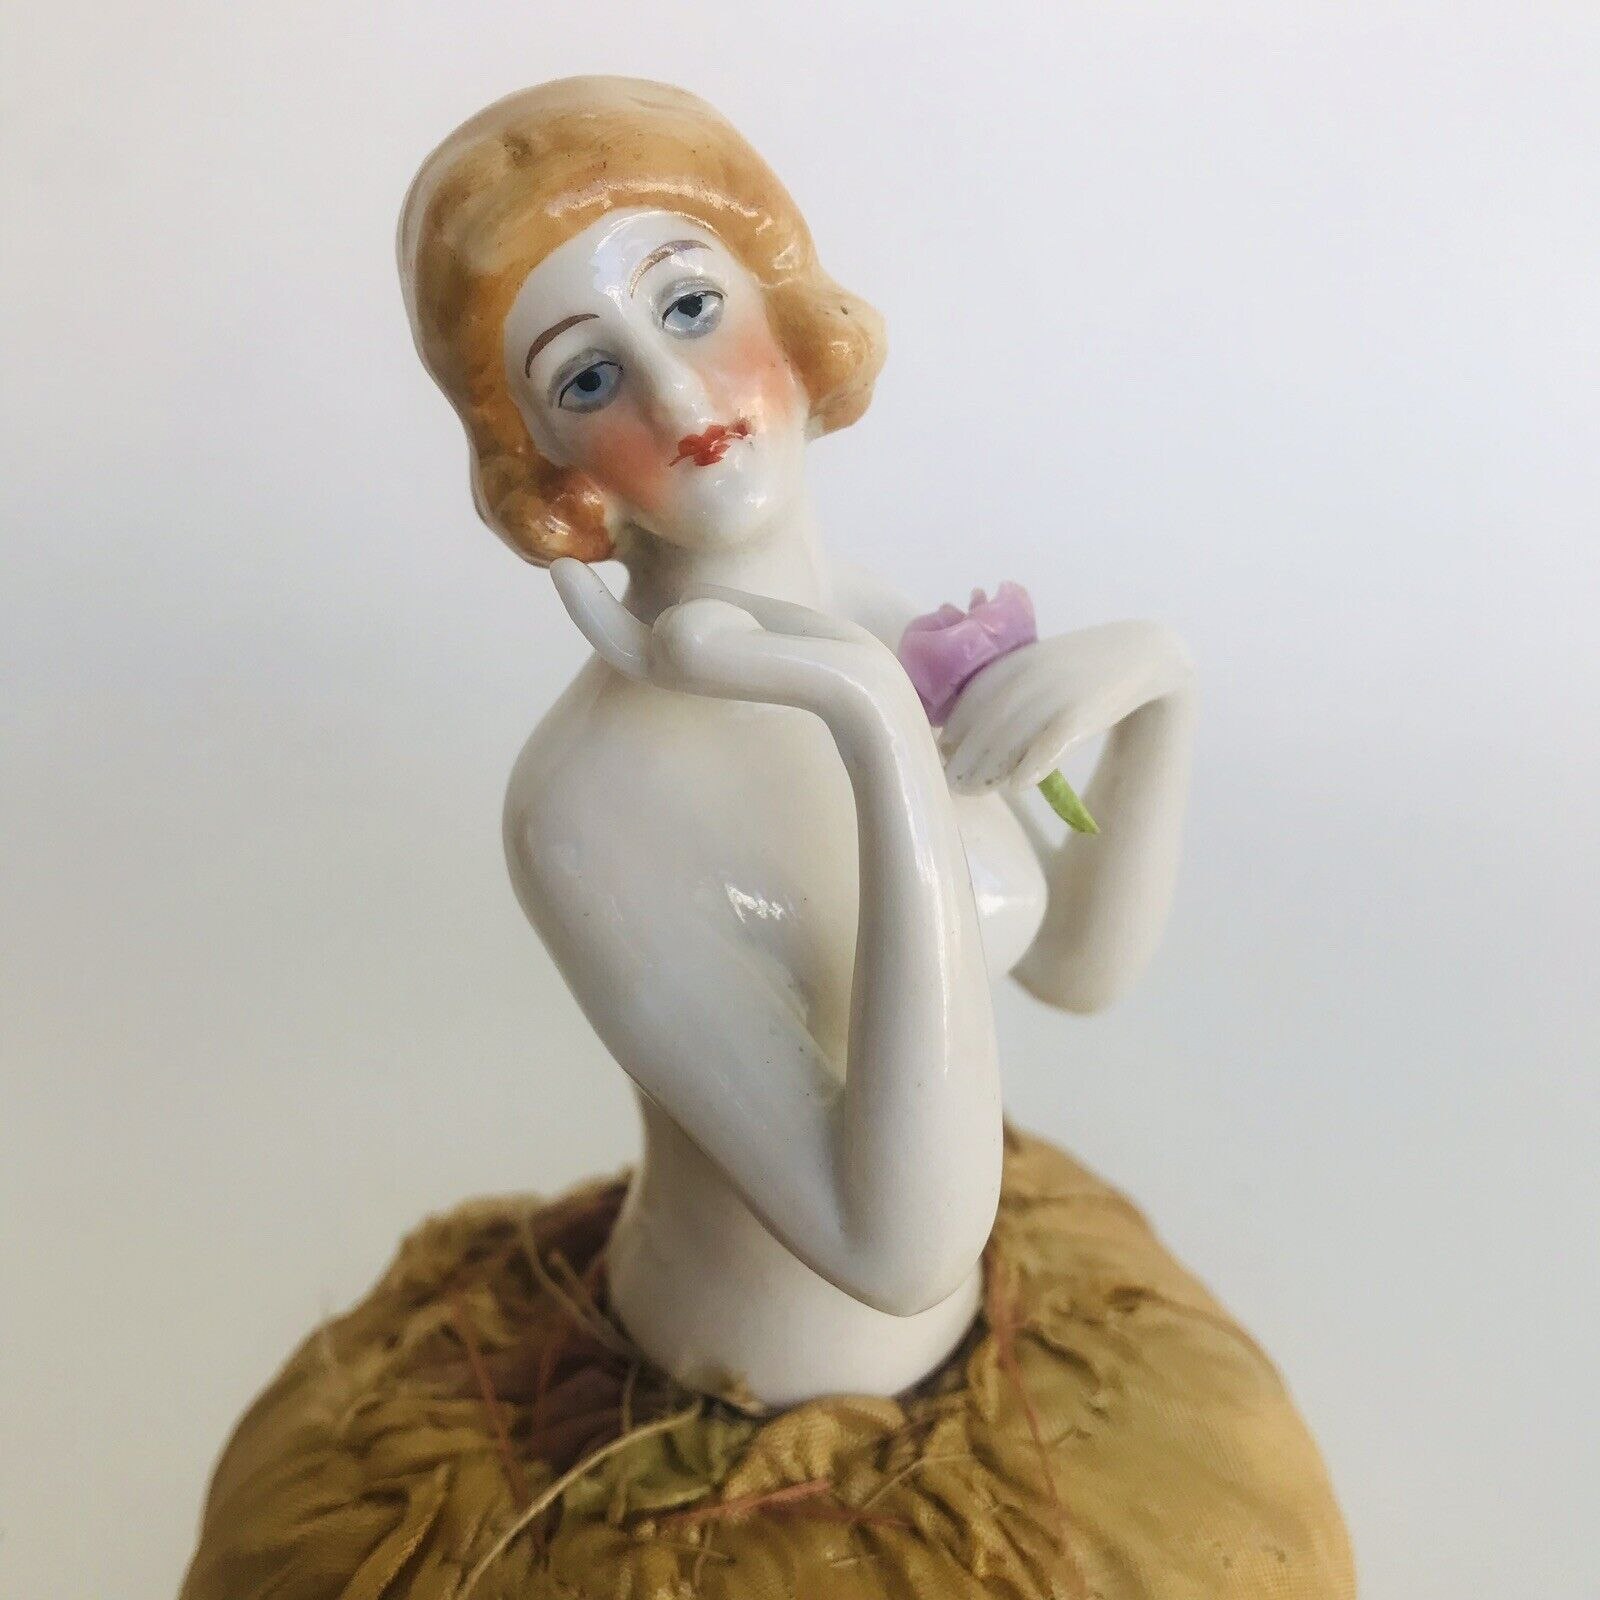 Antique Marked German Fancy Boudoir Half Doll Pin Cushion with Legs & Arms Away